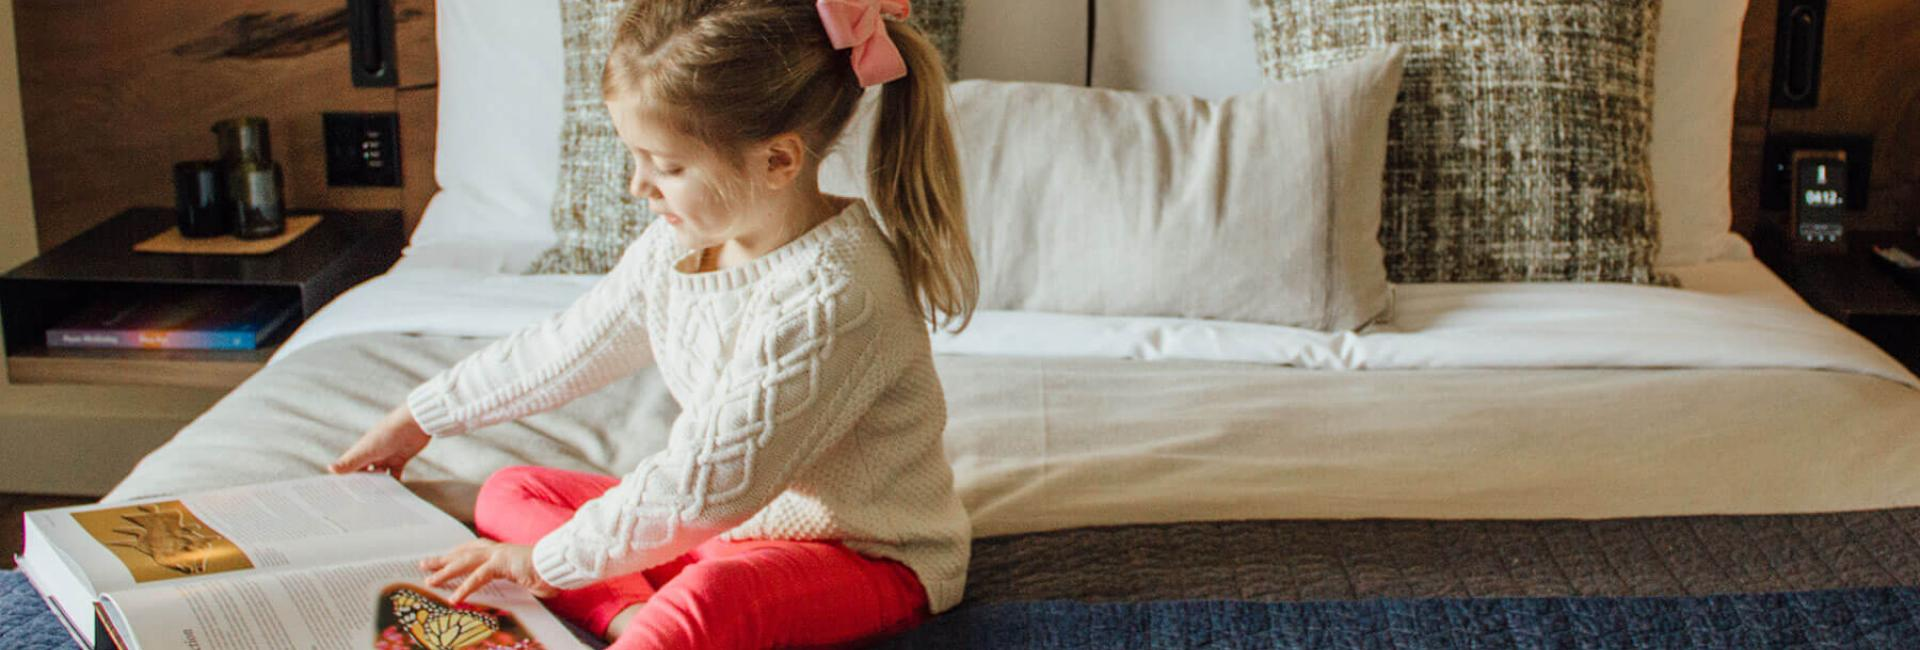 nyc's-best-hotel-experiences-kids